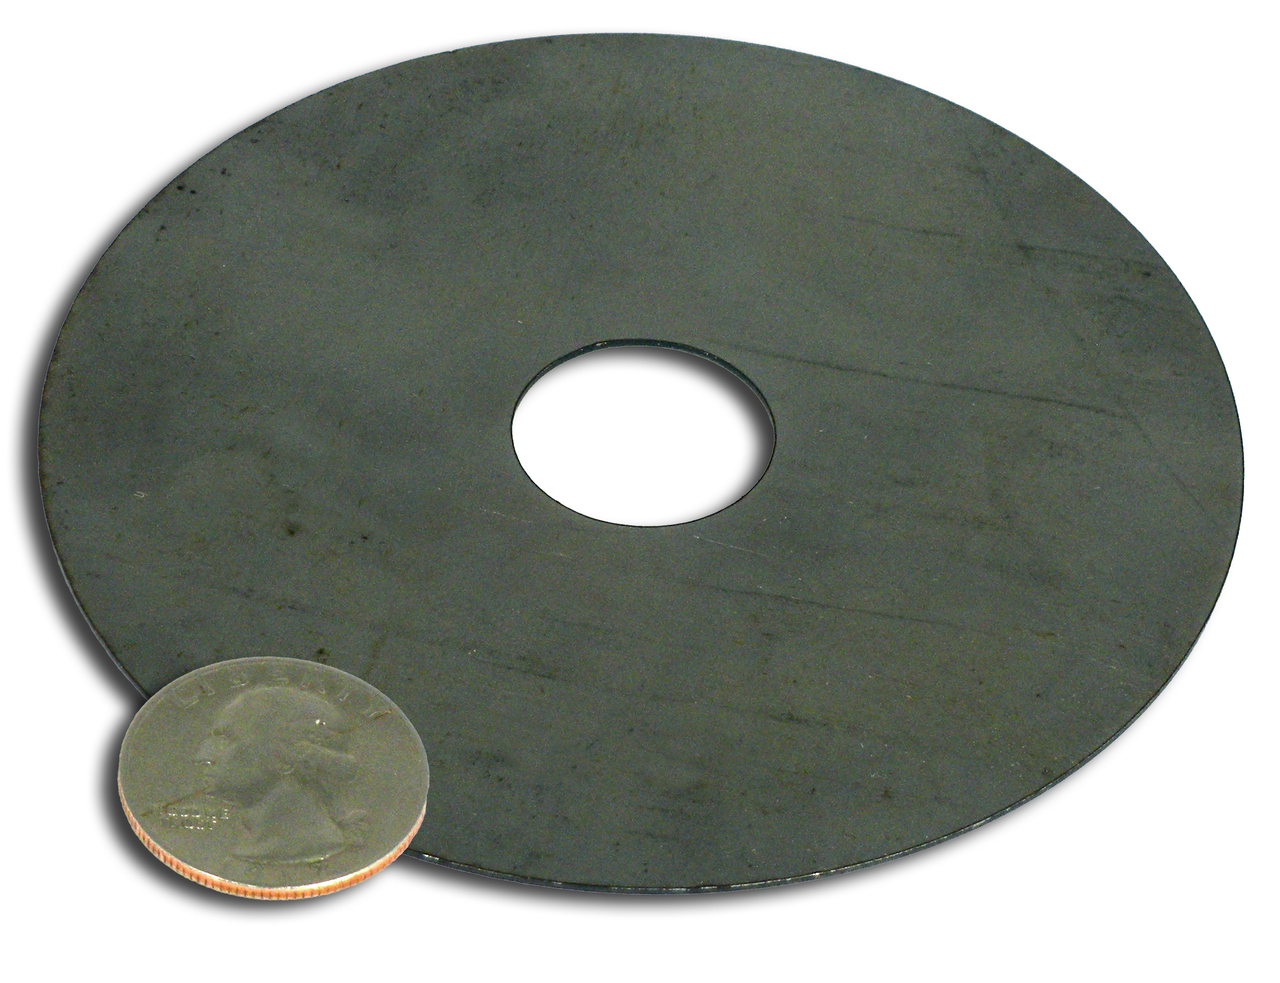 Deluxe Craft Lathe Adapter Disc